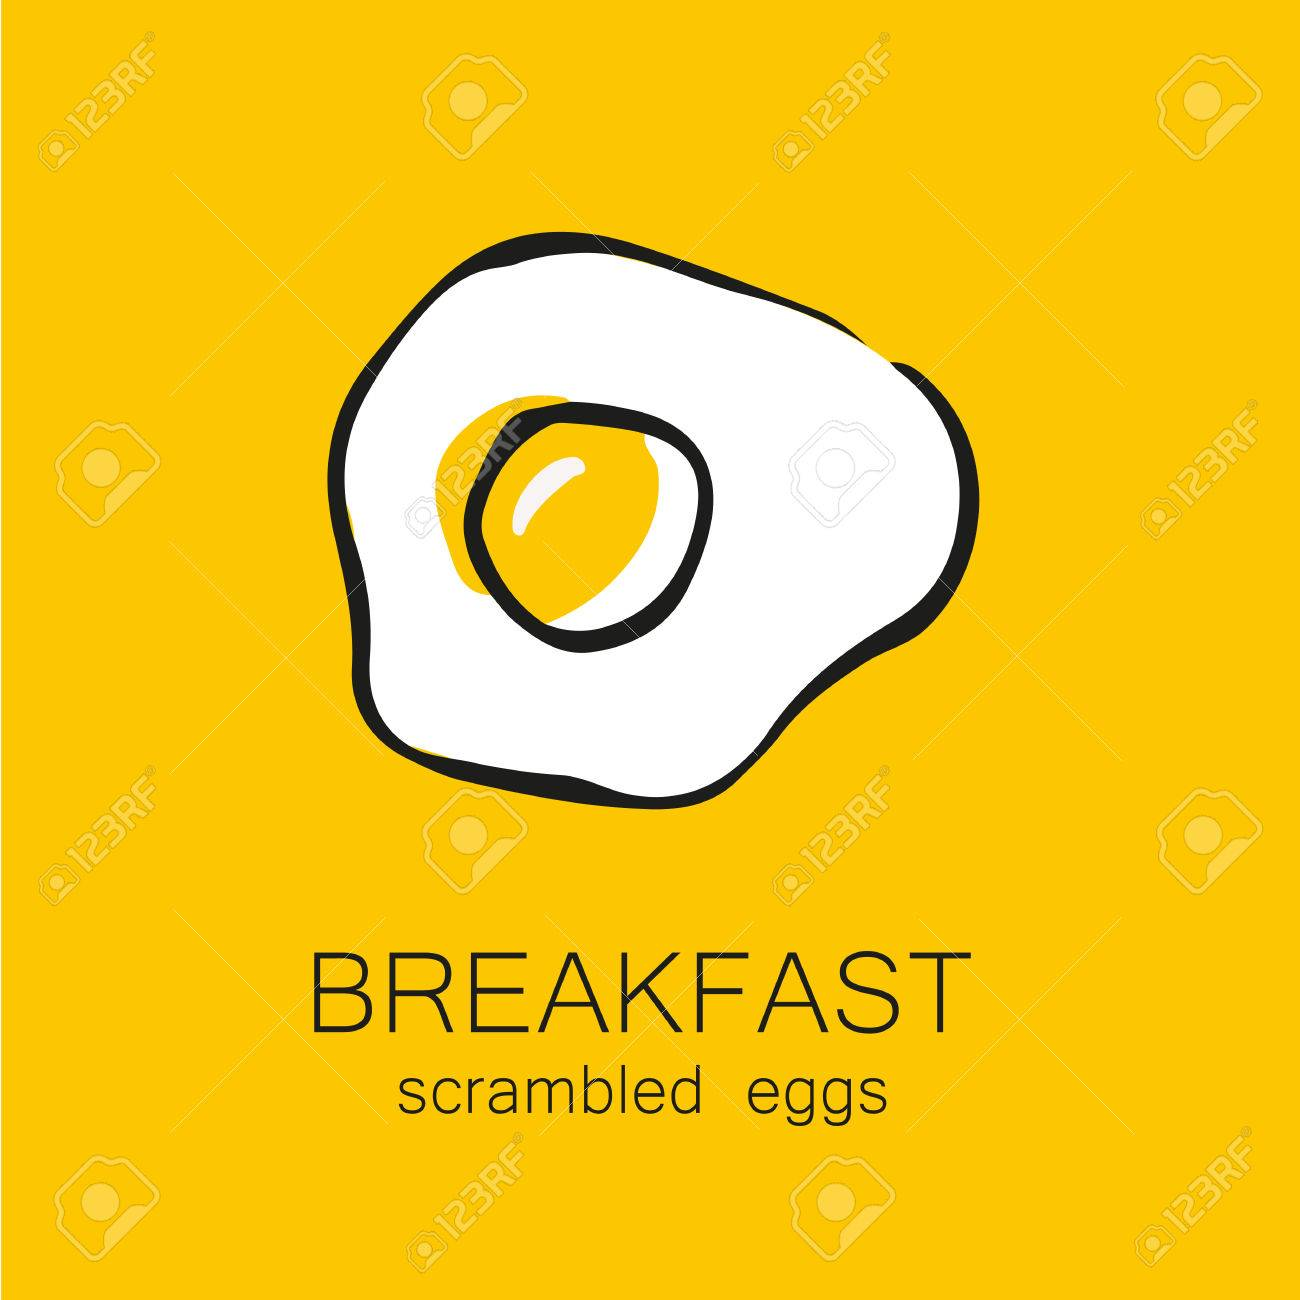 Breakfast - fried or scrambled eggs. Template design for the , menus, flyers for cafes, restaurants, fast food, food. - 46987612